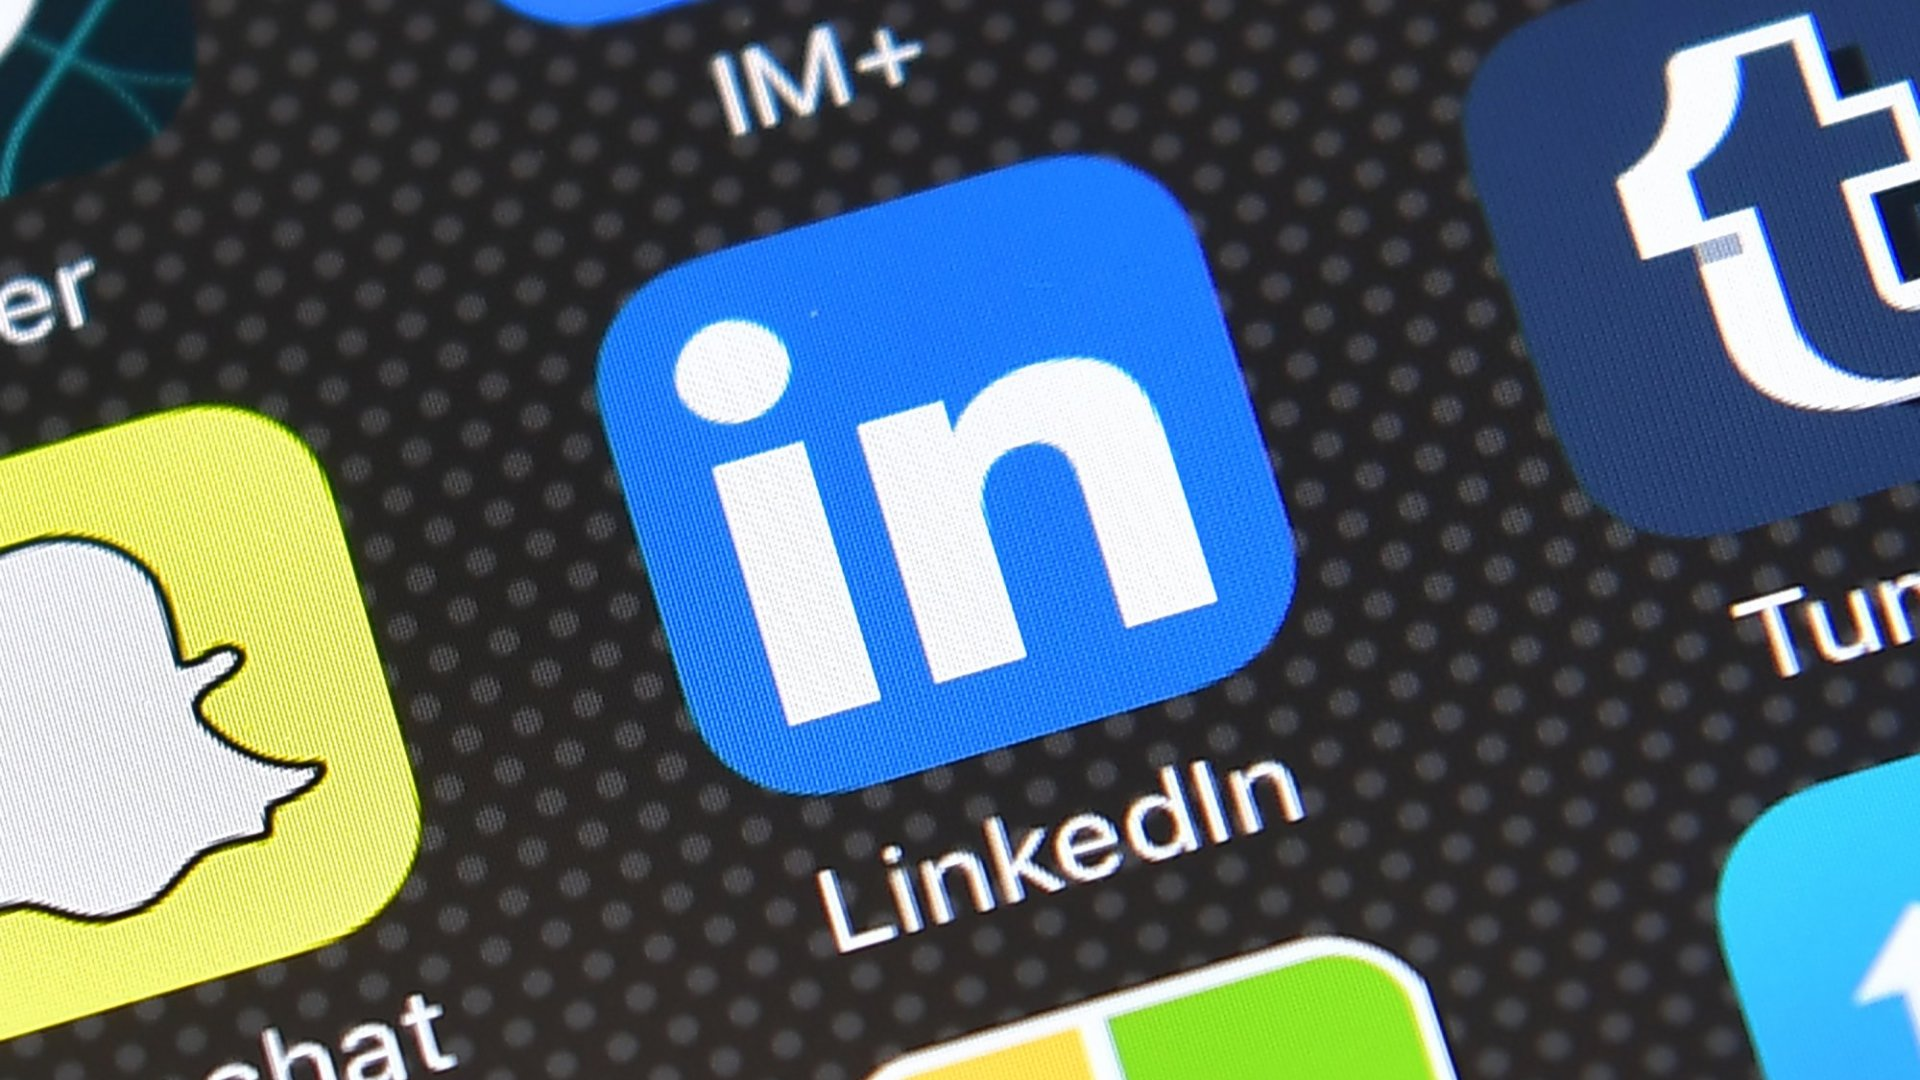 LinkedIn Just Stole an Idea From Facebook - And it's Tremendous